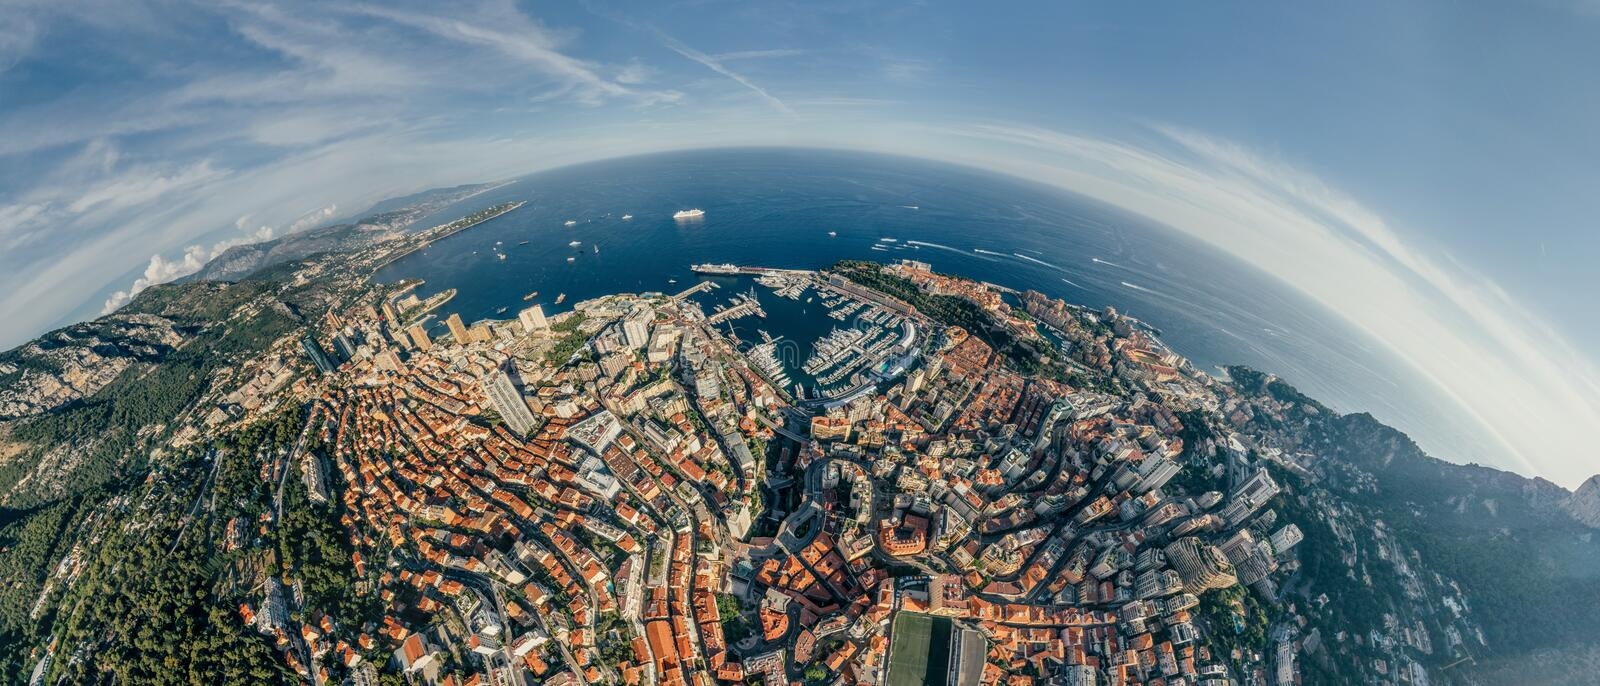 Mountains in Monaco Monte-Carlo city riviera Drone summer photo Air 360 vr virtual reality drone panorama. Sphere Panorama Summer Sea Coastline in Monaco Air royalty free stock photo